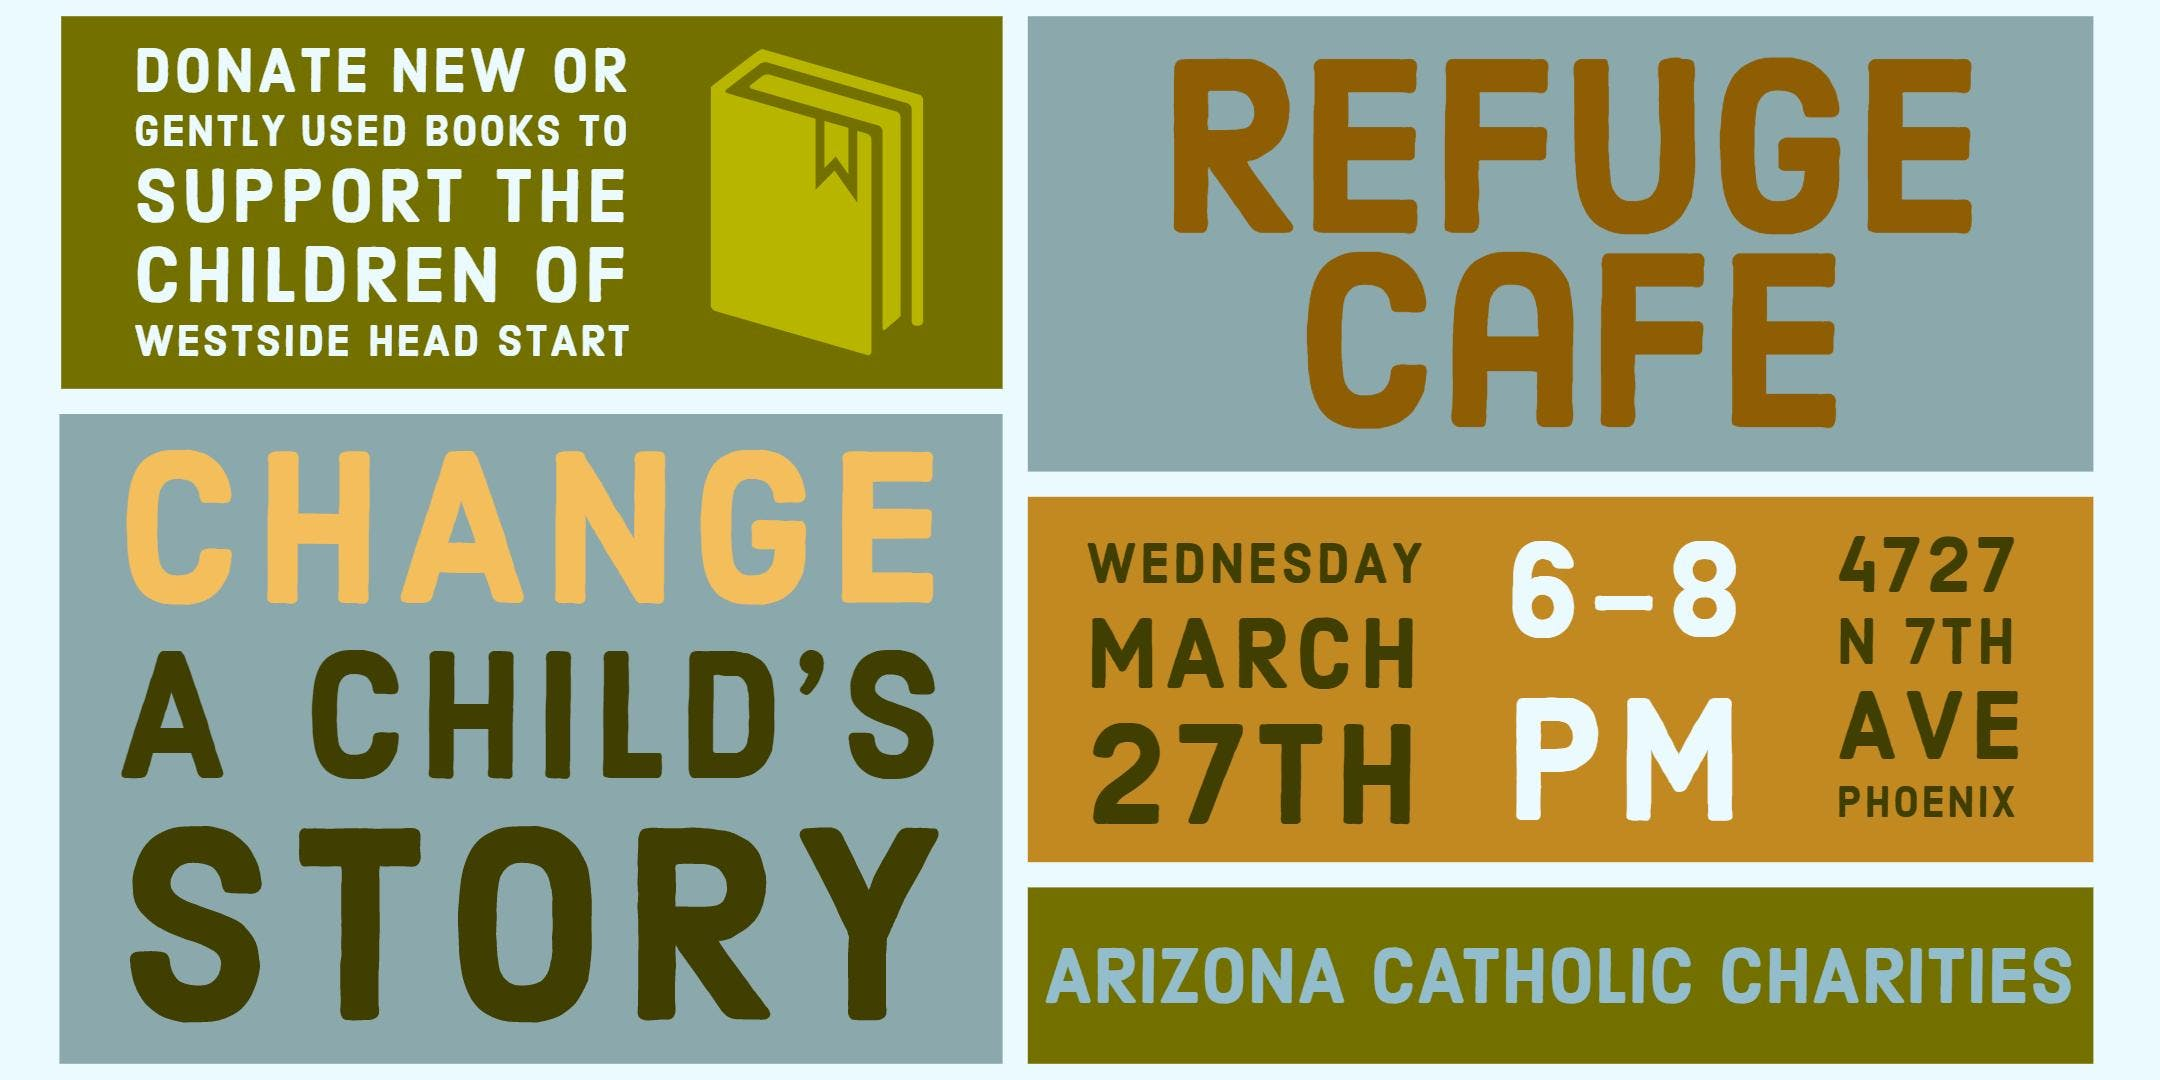 Change a Child's Story – Book Drive and Social Gathering